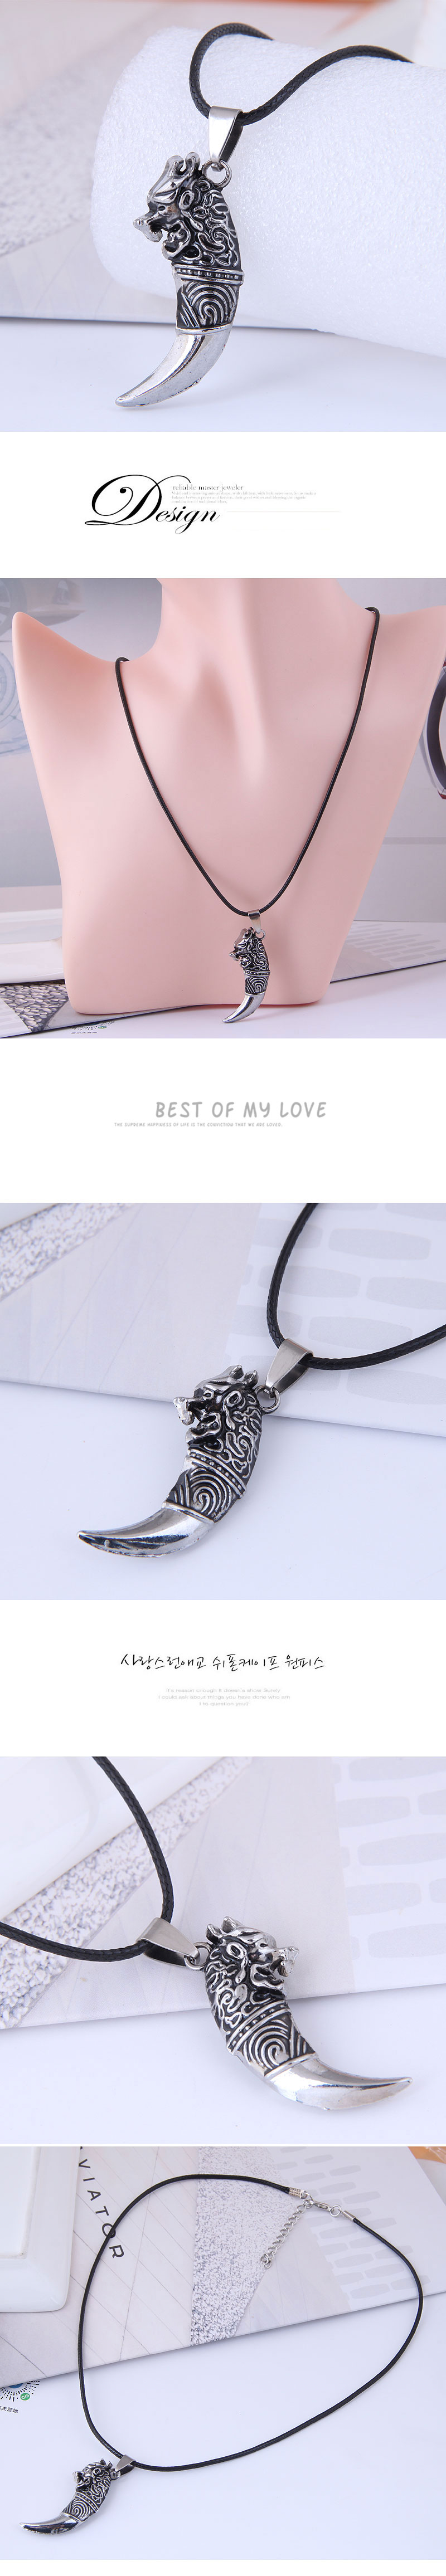 fashion new style metal concise spangled wax rope necklace NHSC359630